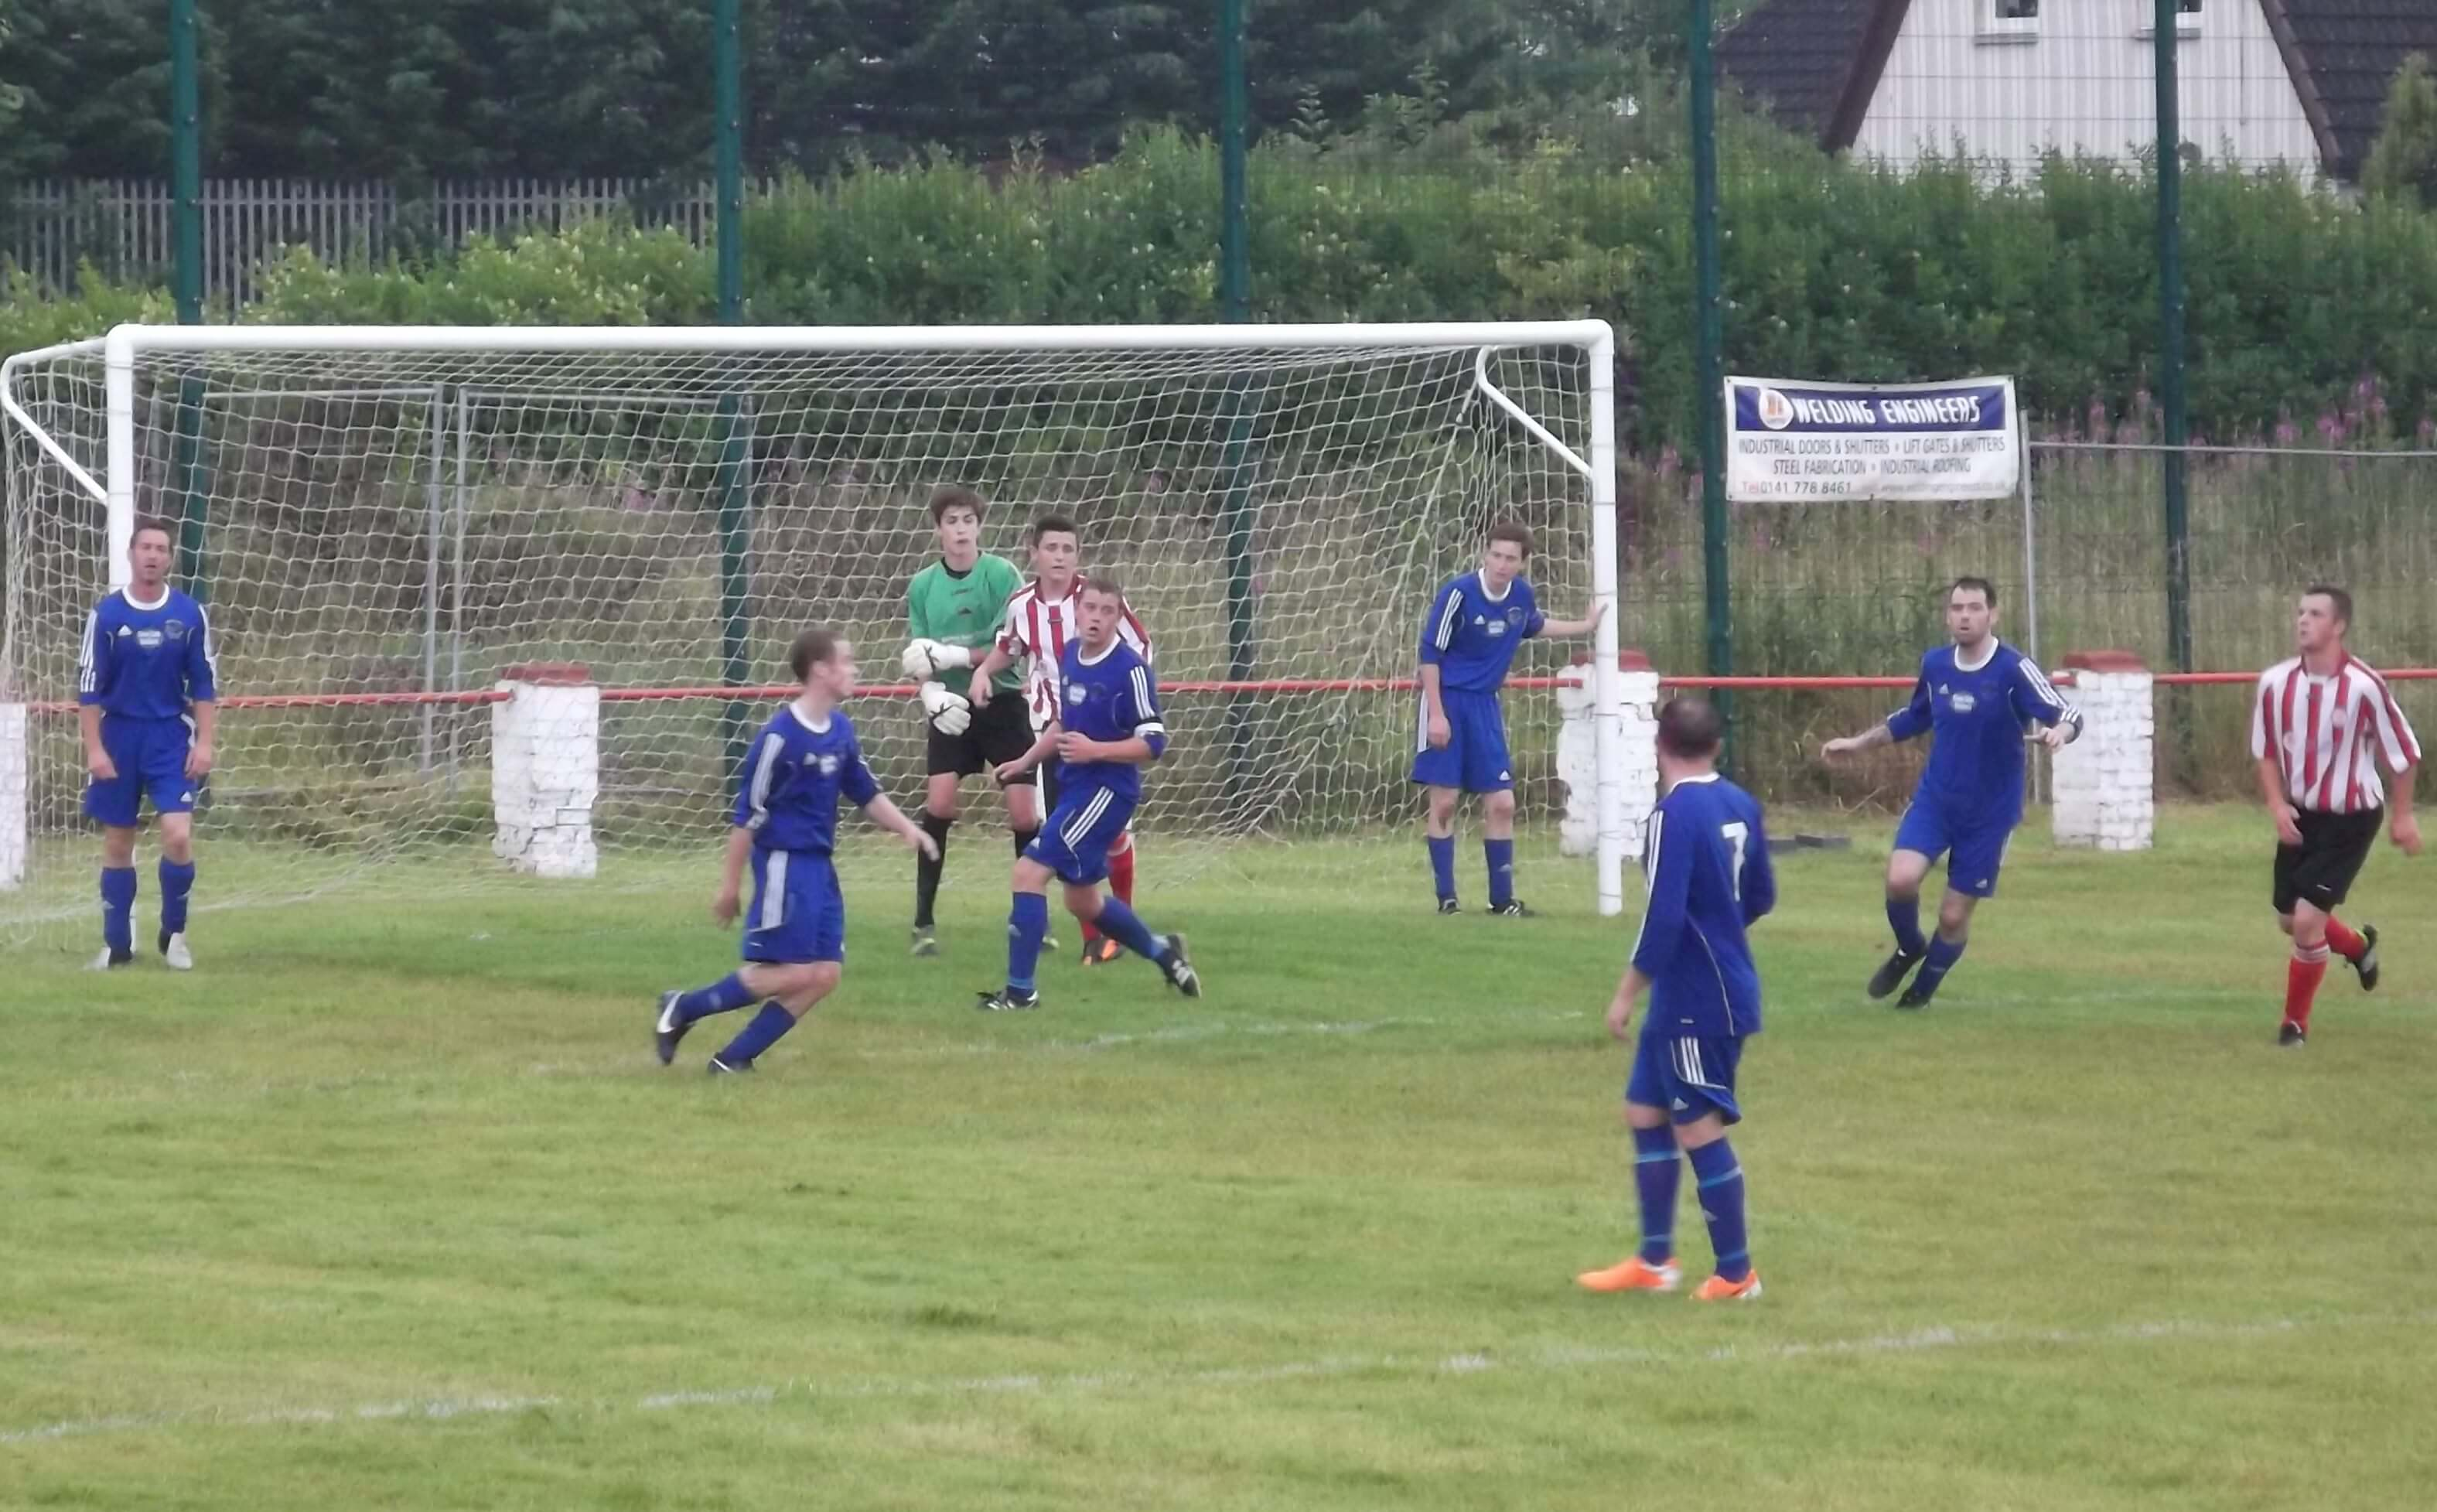 Abbey Vale defend in the second half